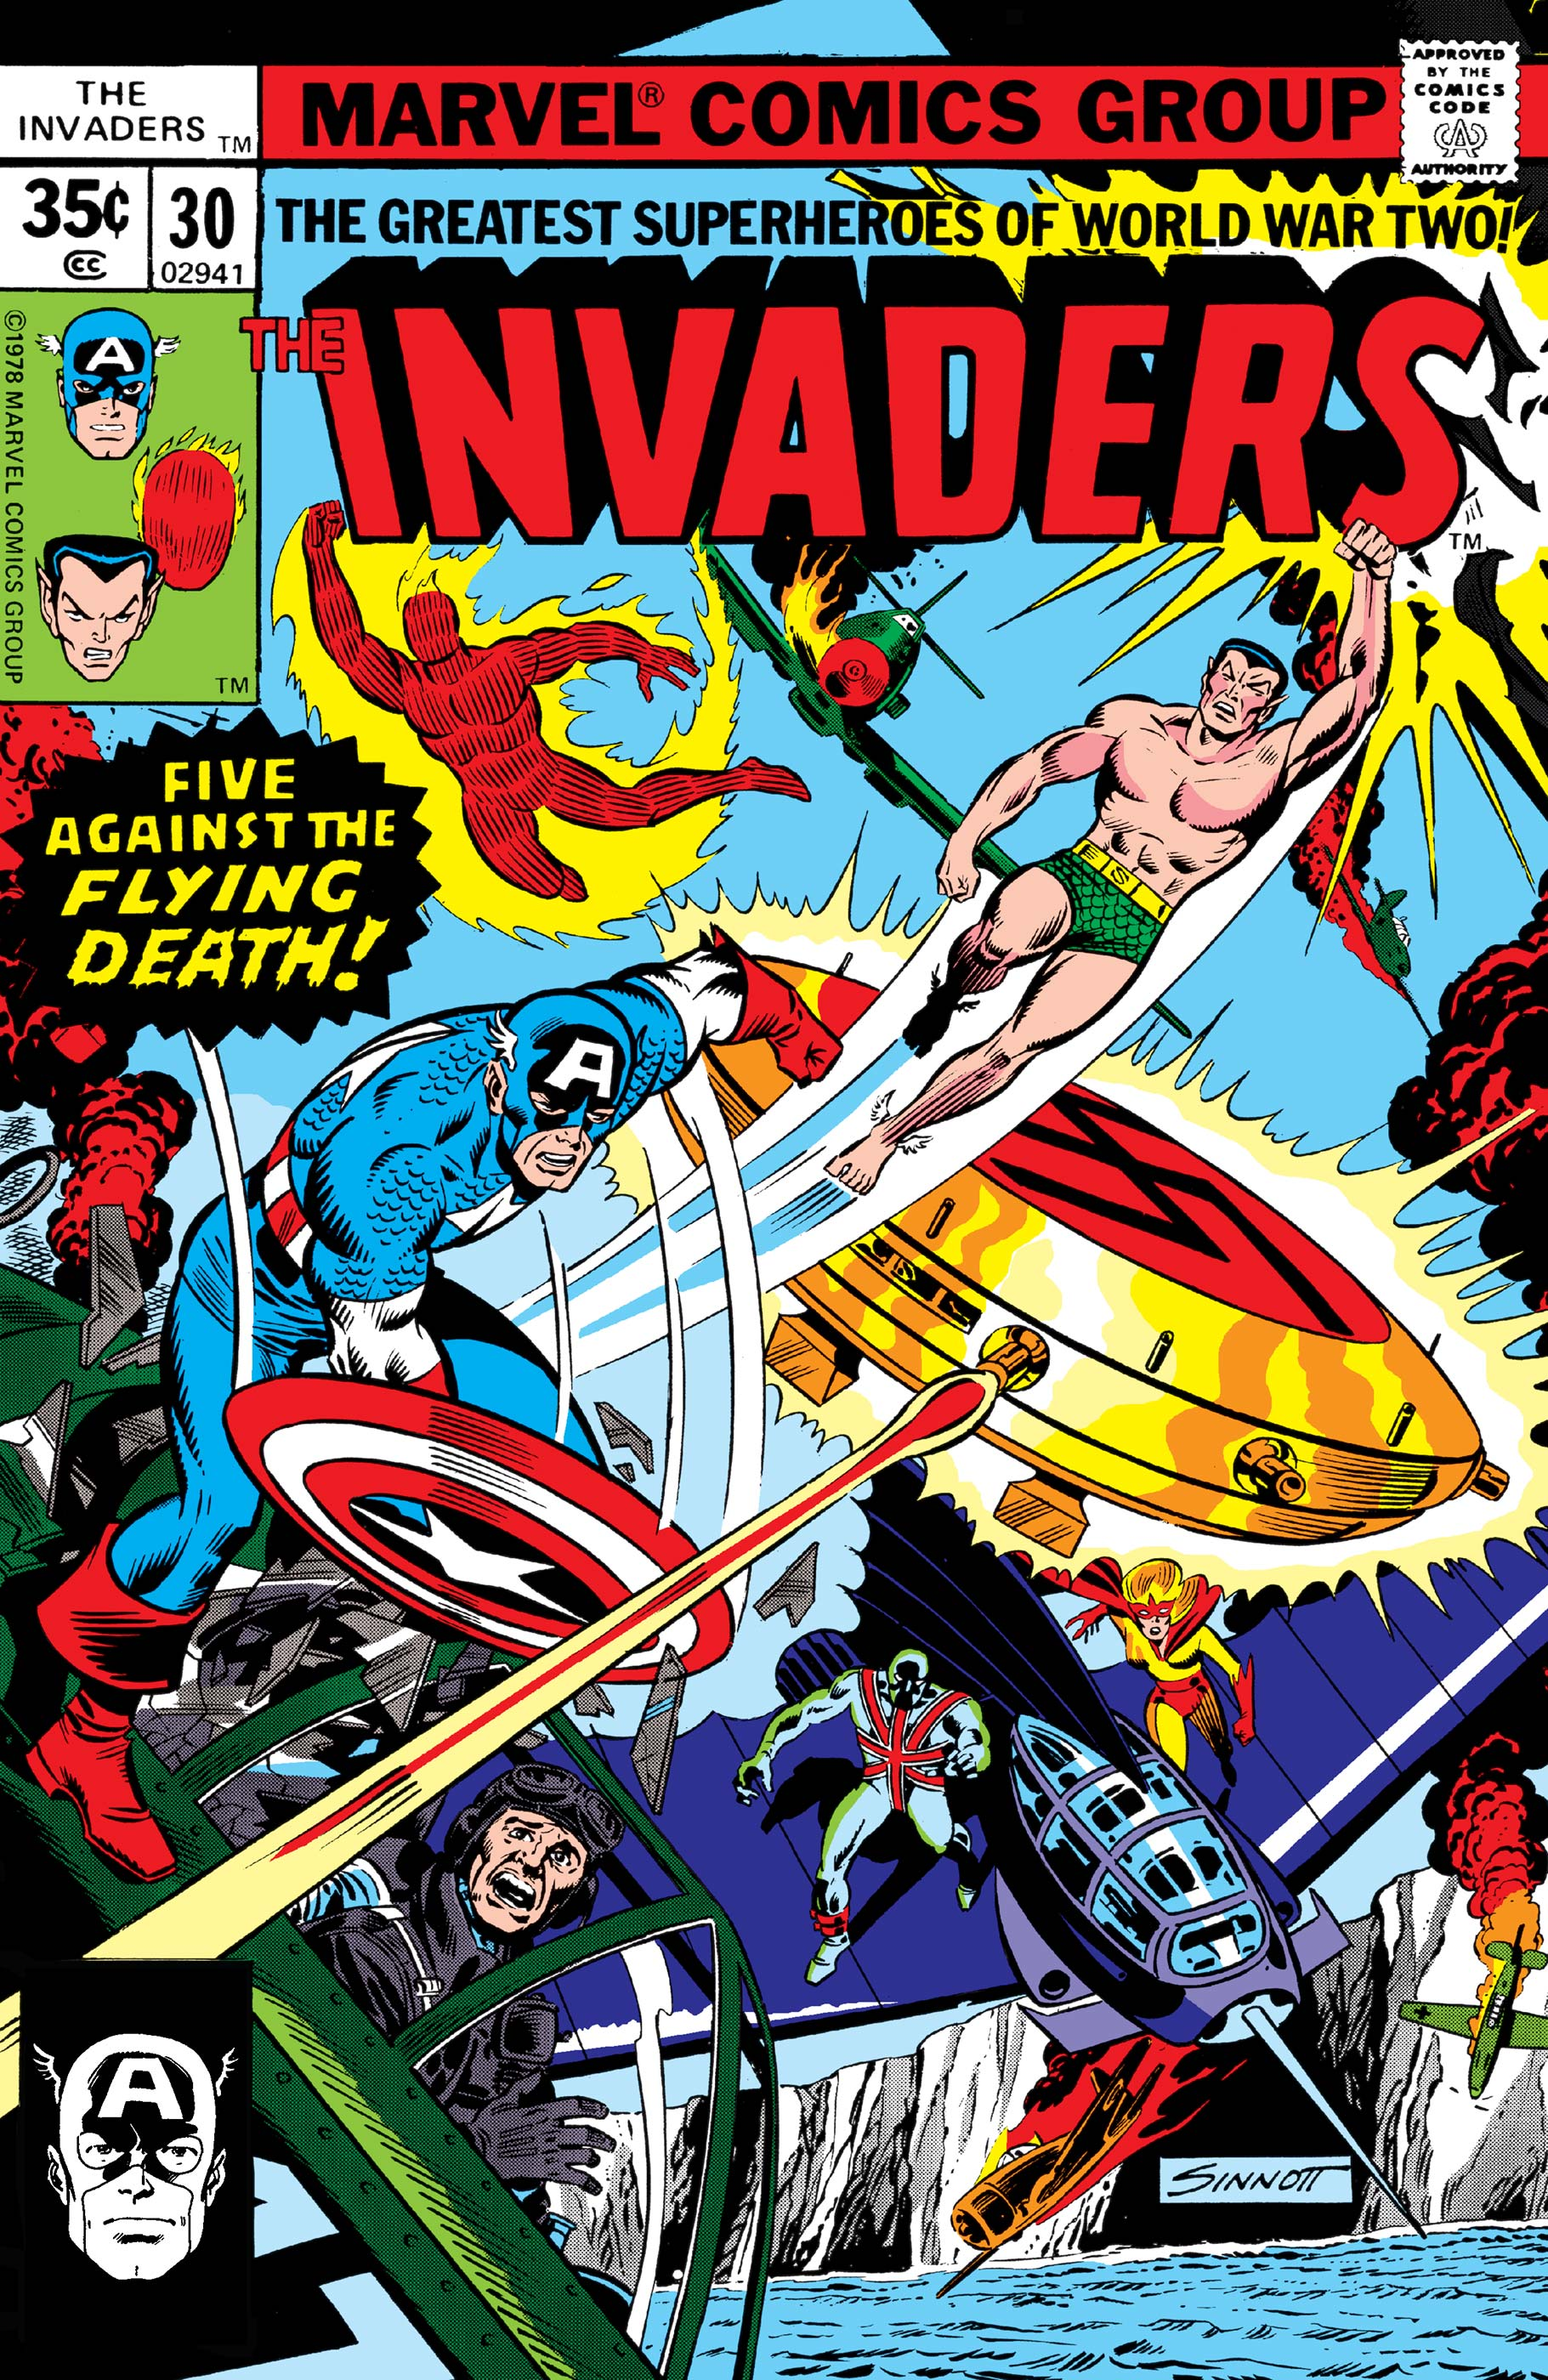 Invaders (1975) #30